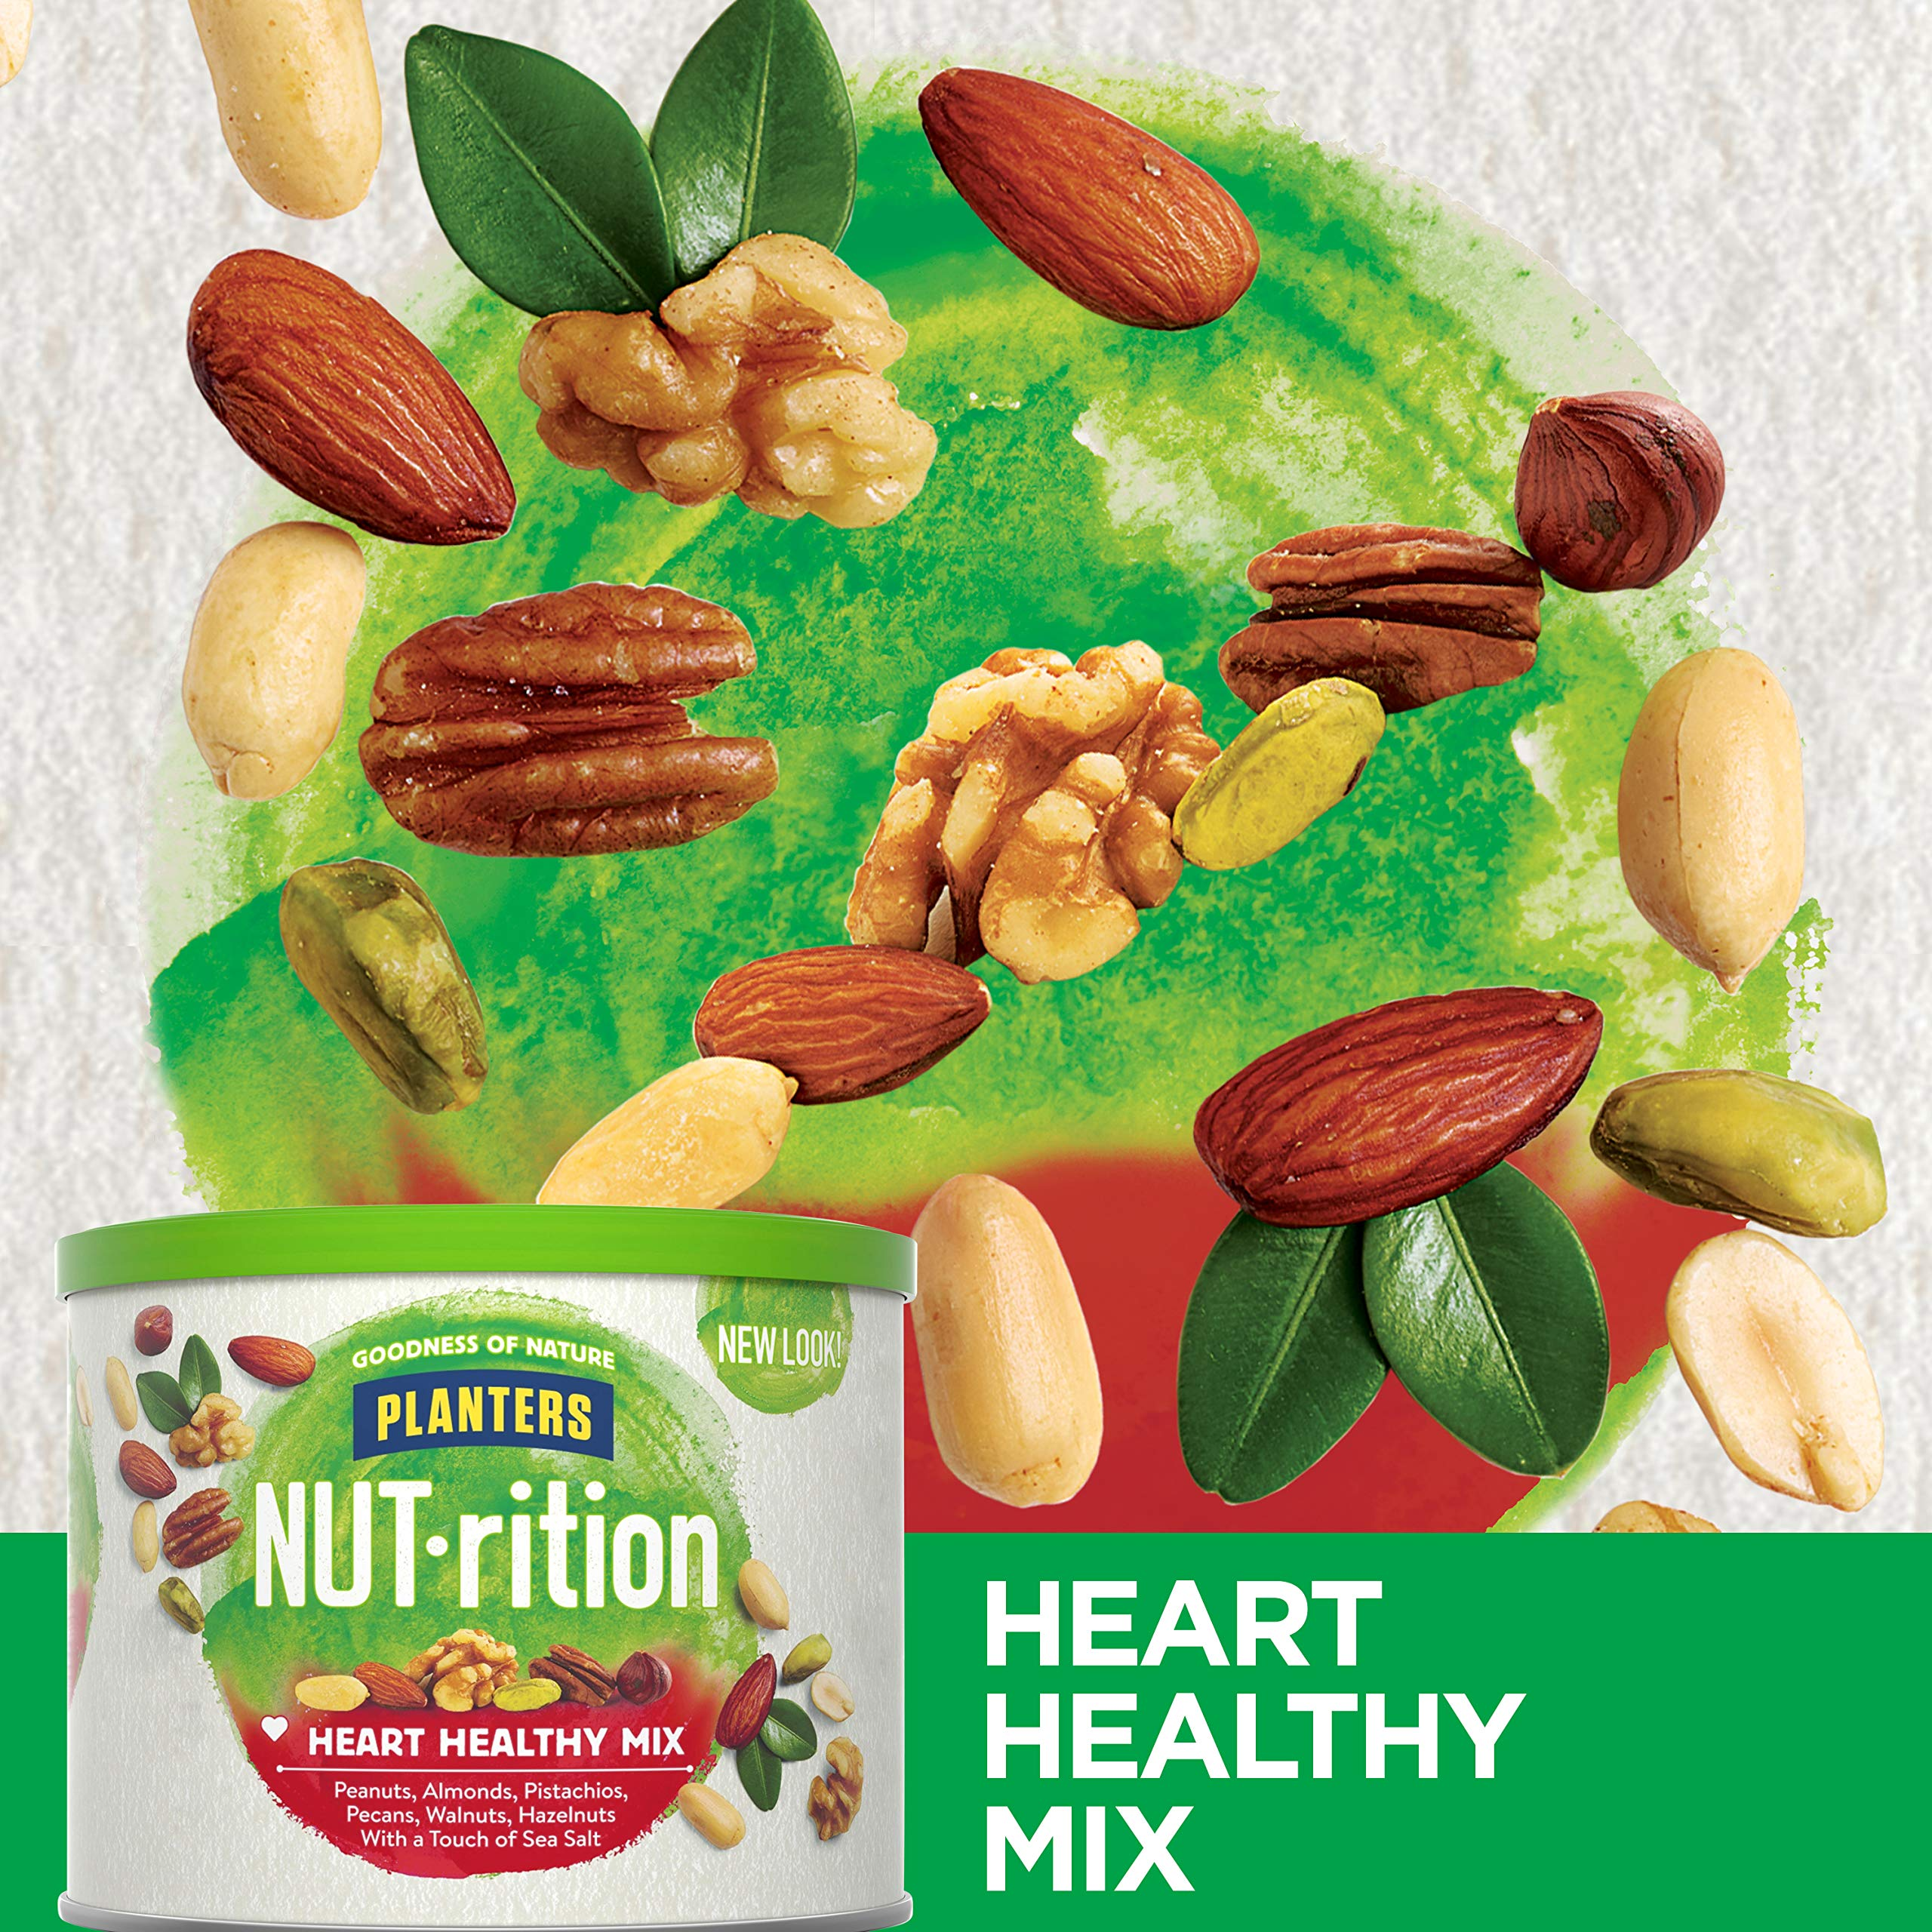 NUTrition Heart Healthy Snack Nut Mix (9.75oz, Pack of 3) by Planters (Image #6)